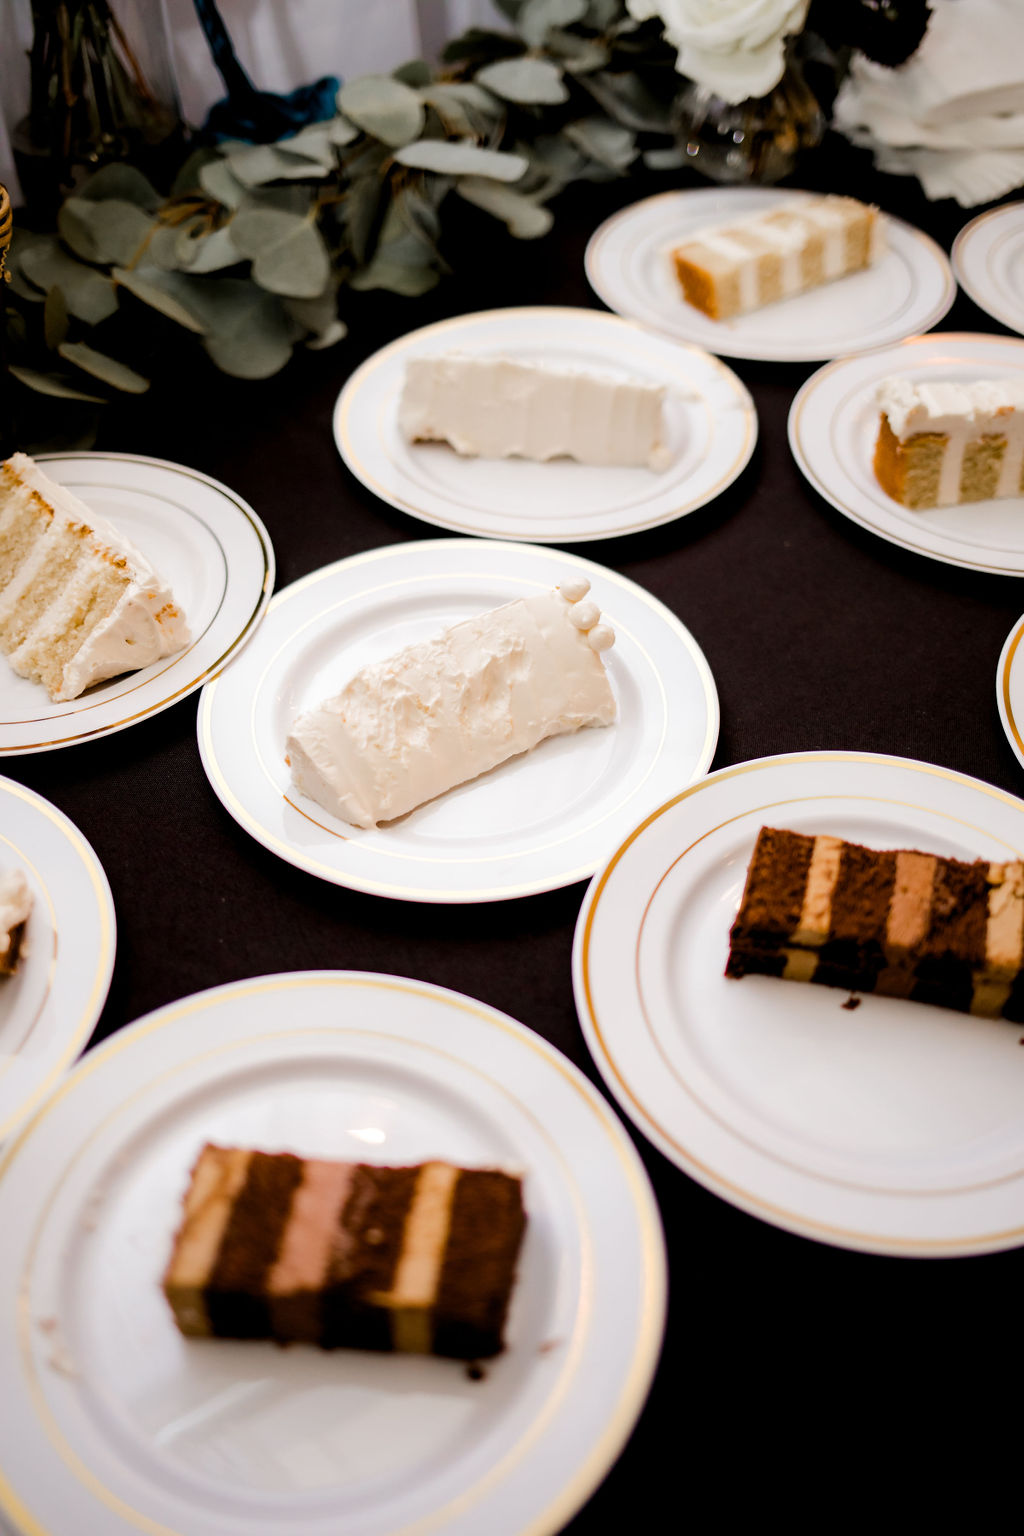 Cut pieces of wedding cake